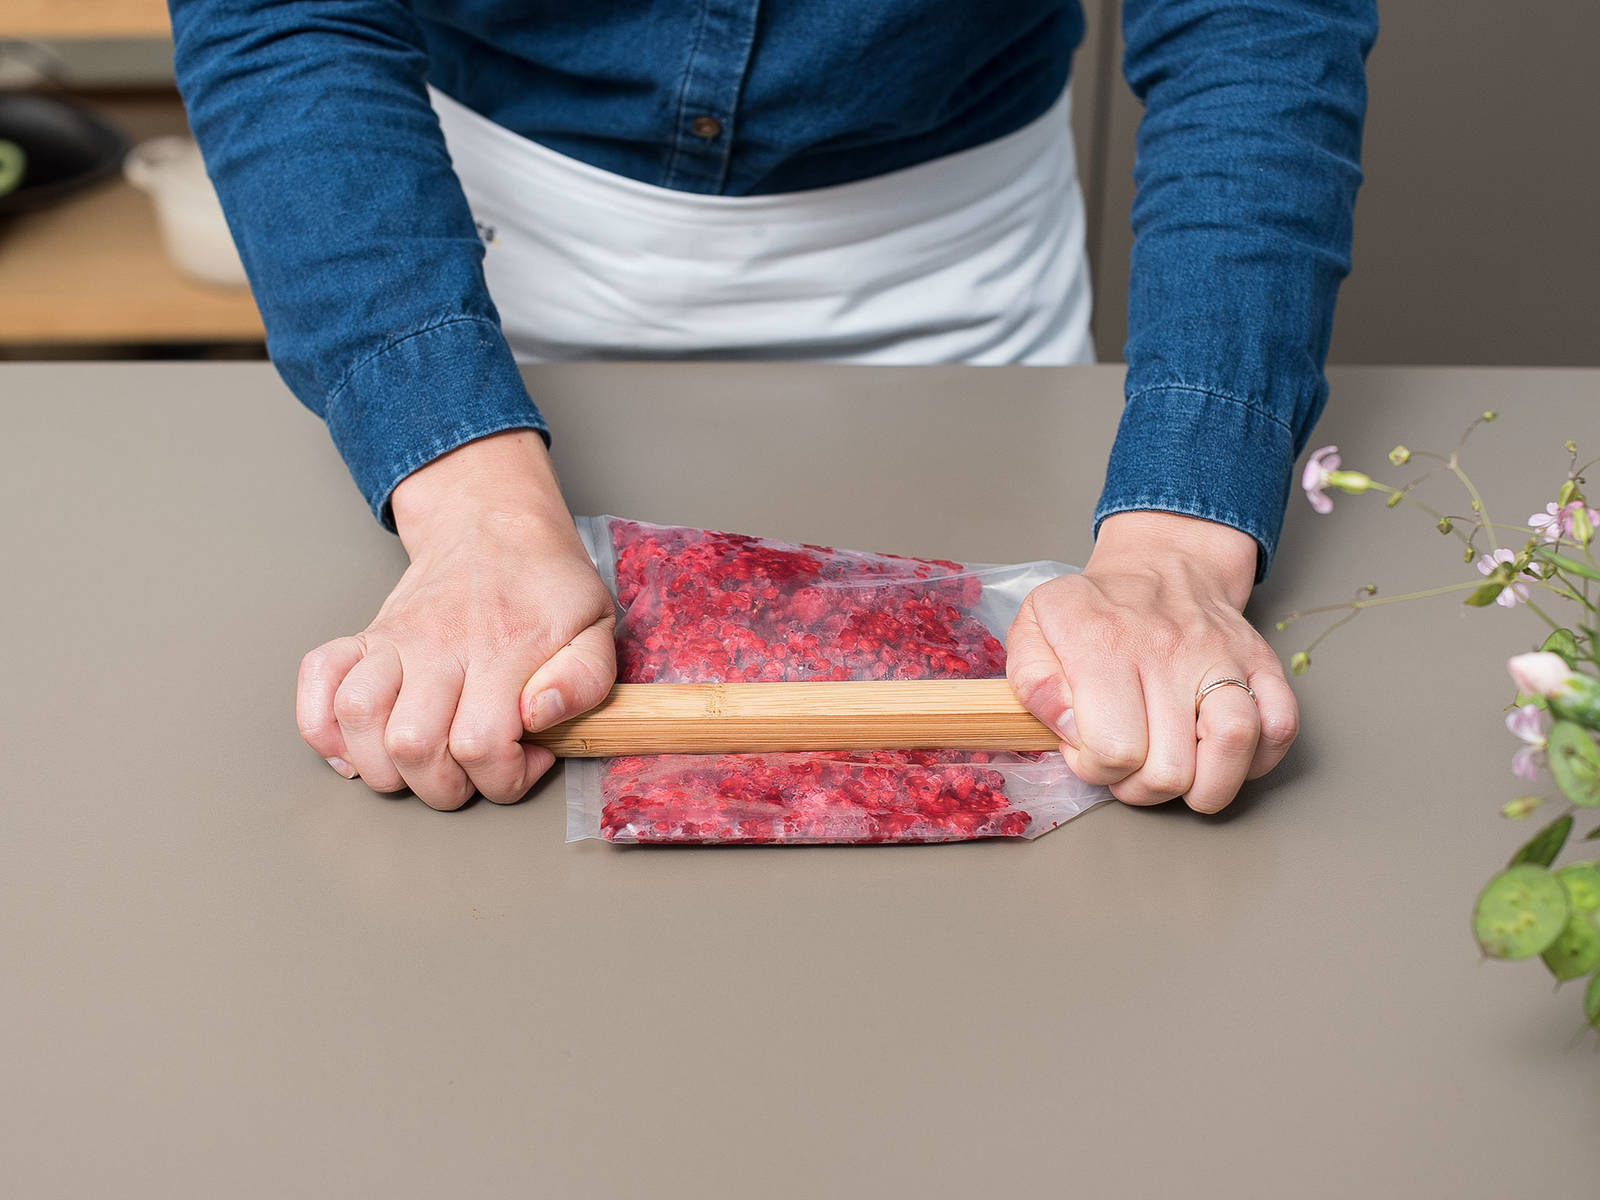 Use a rolling pin to mash up raspberries in a sealable plastic bag and add to popsicle molds, approx. 1 tbsp. per mold.